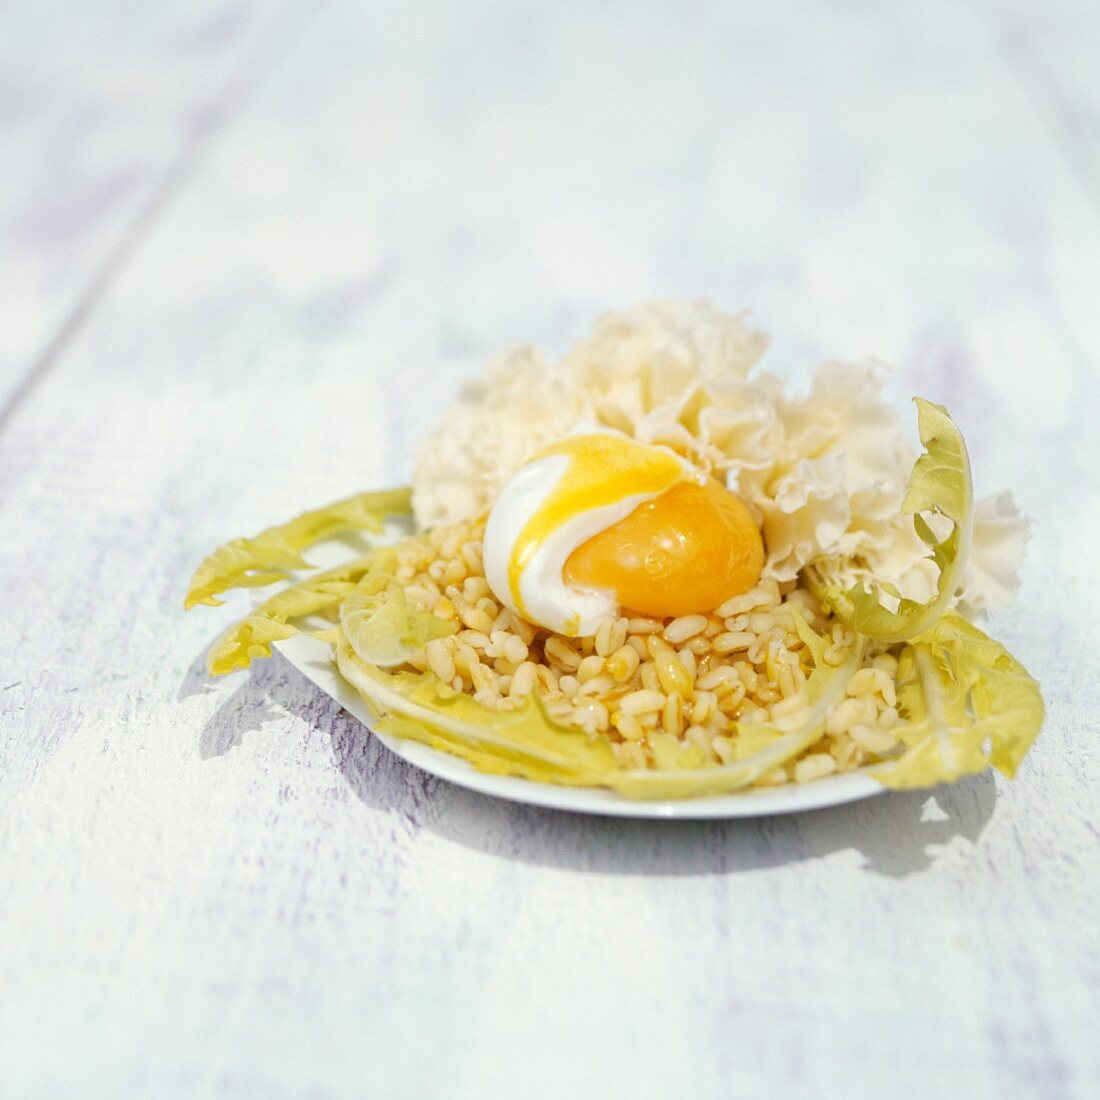 Wheat salad with dandelions, a soft egg and tete-de-Moine cheese